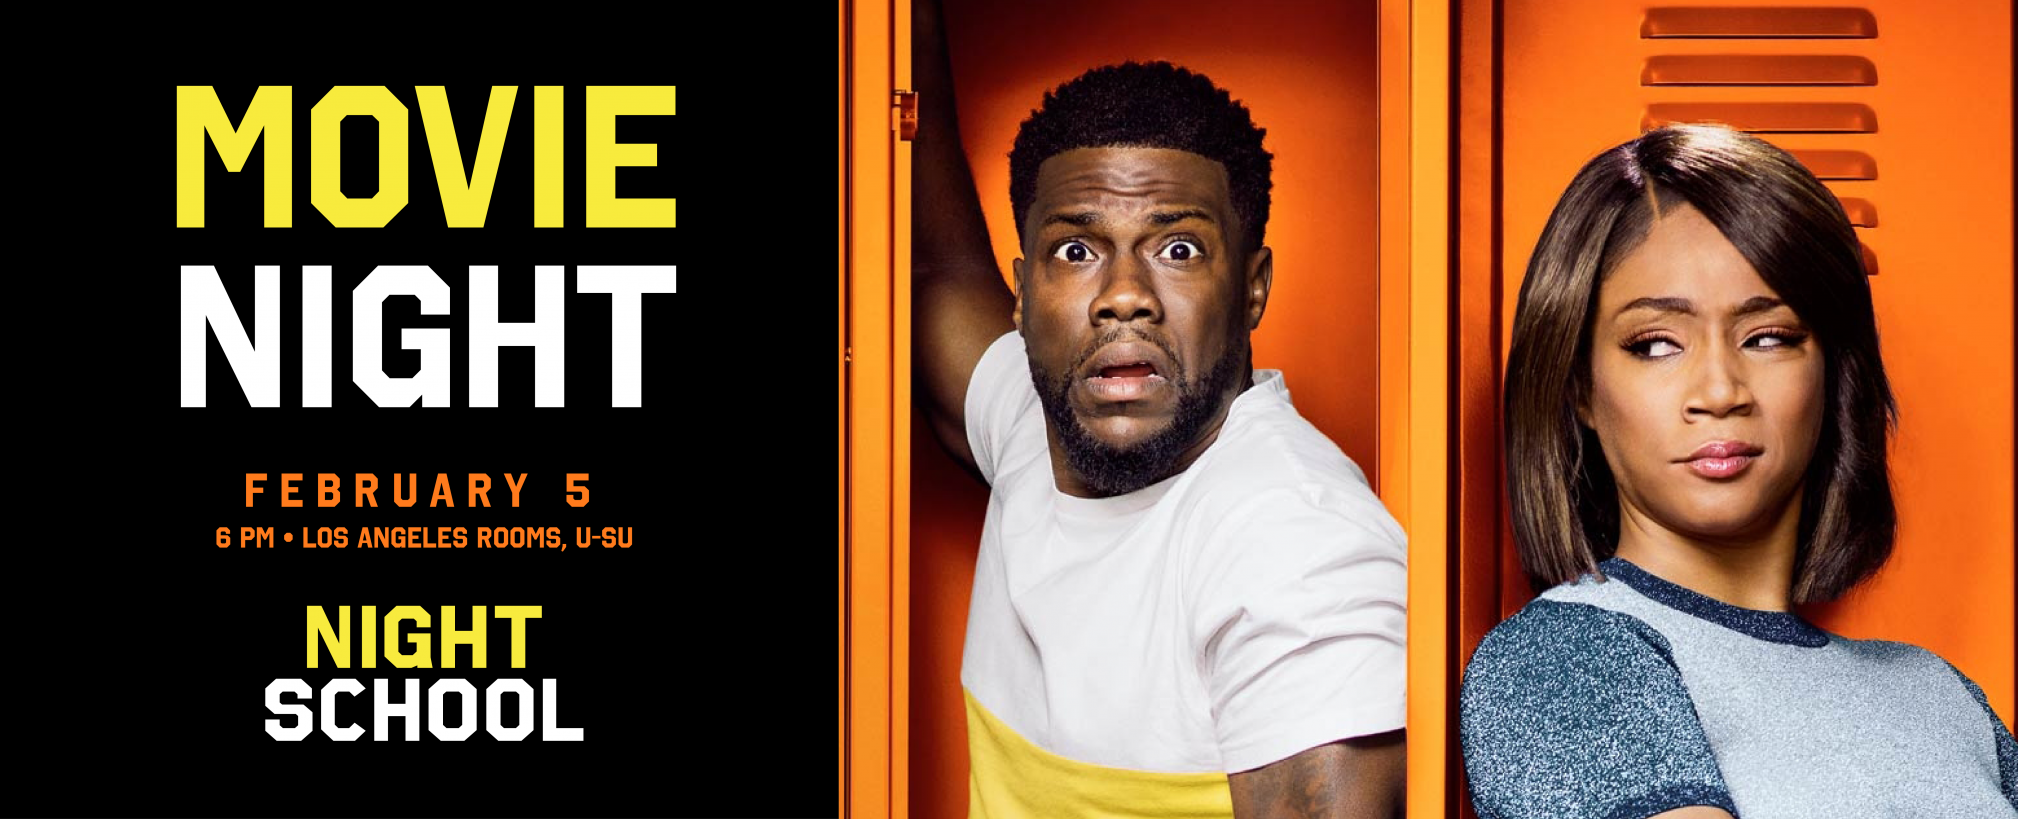 Movie Night: Night School starring Kevin Hart and Tiffany Haddish